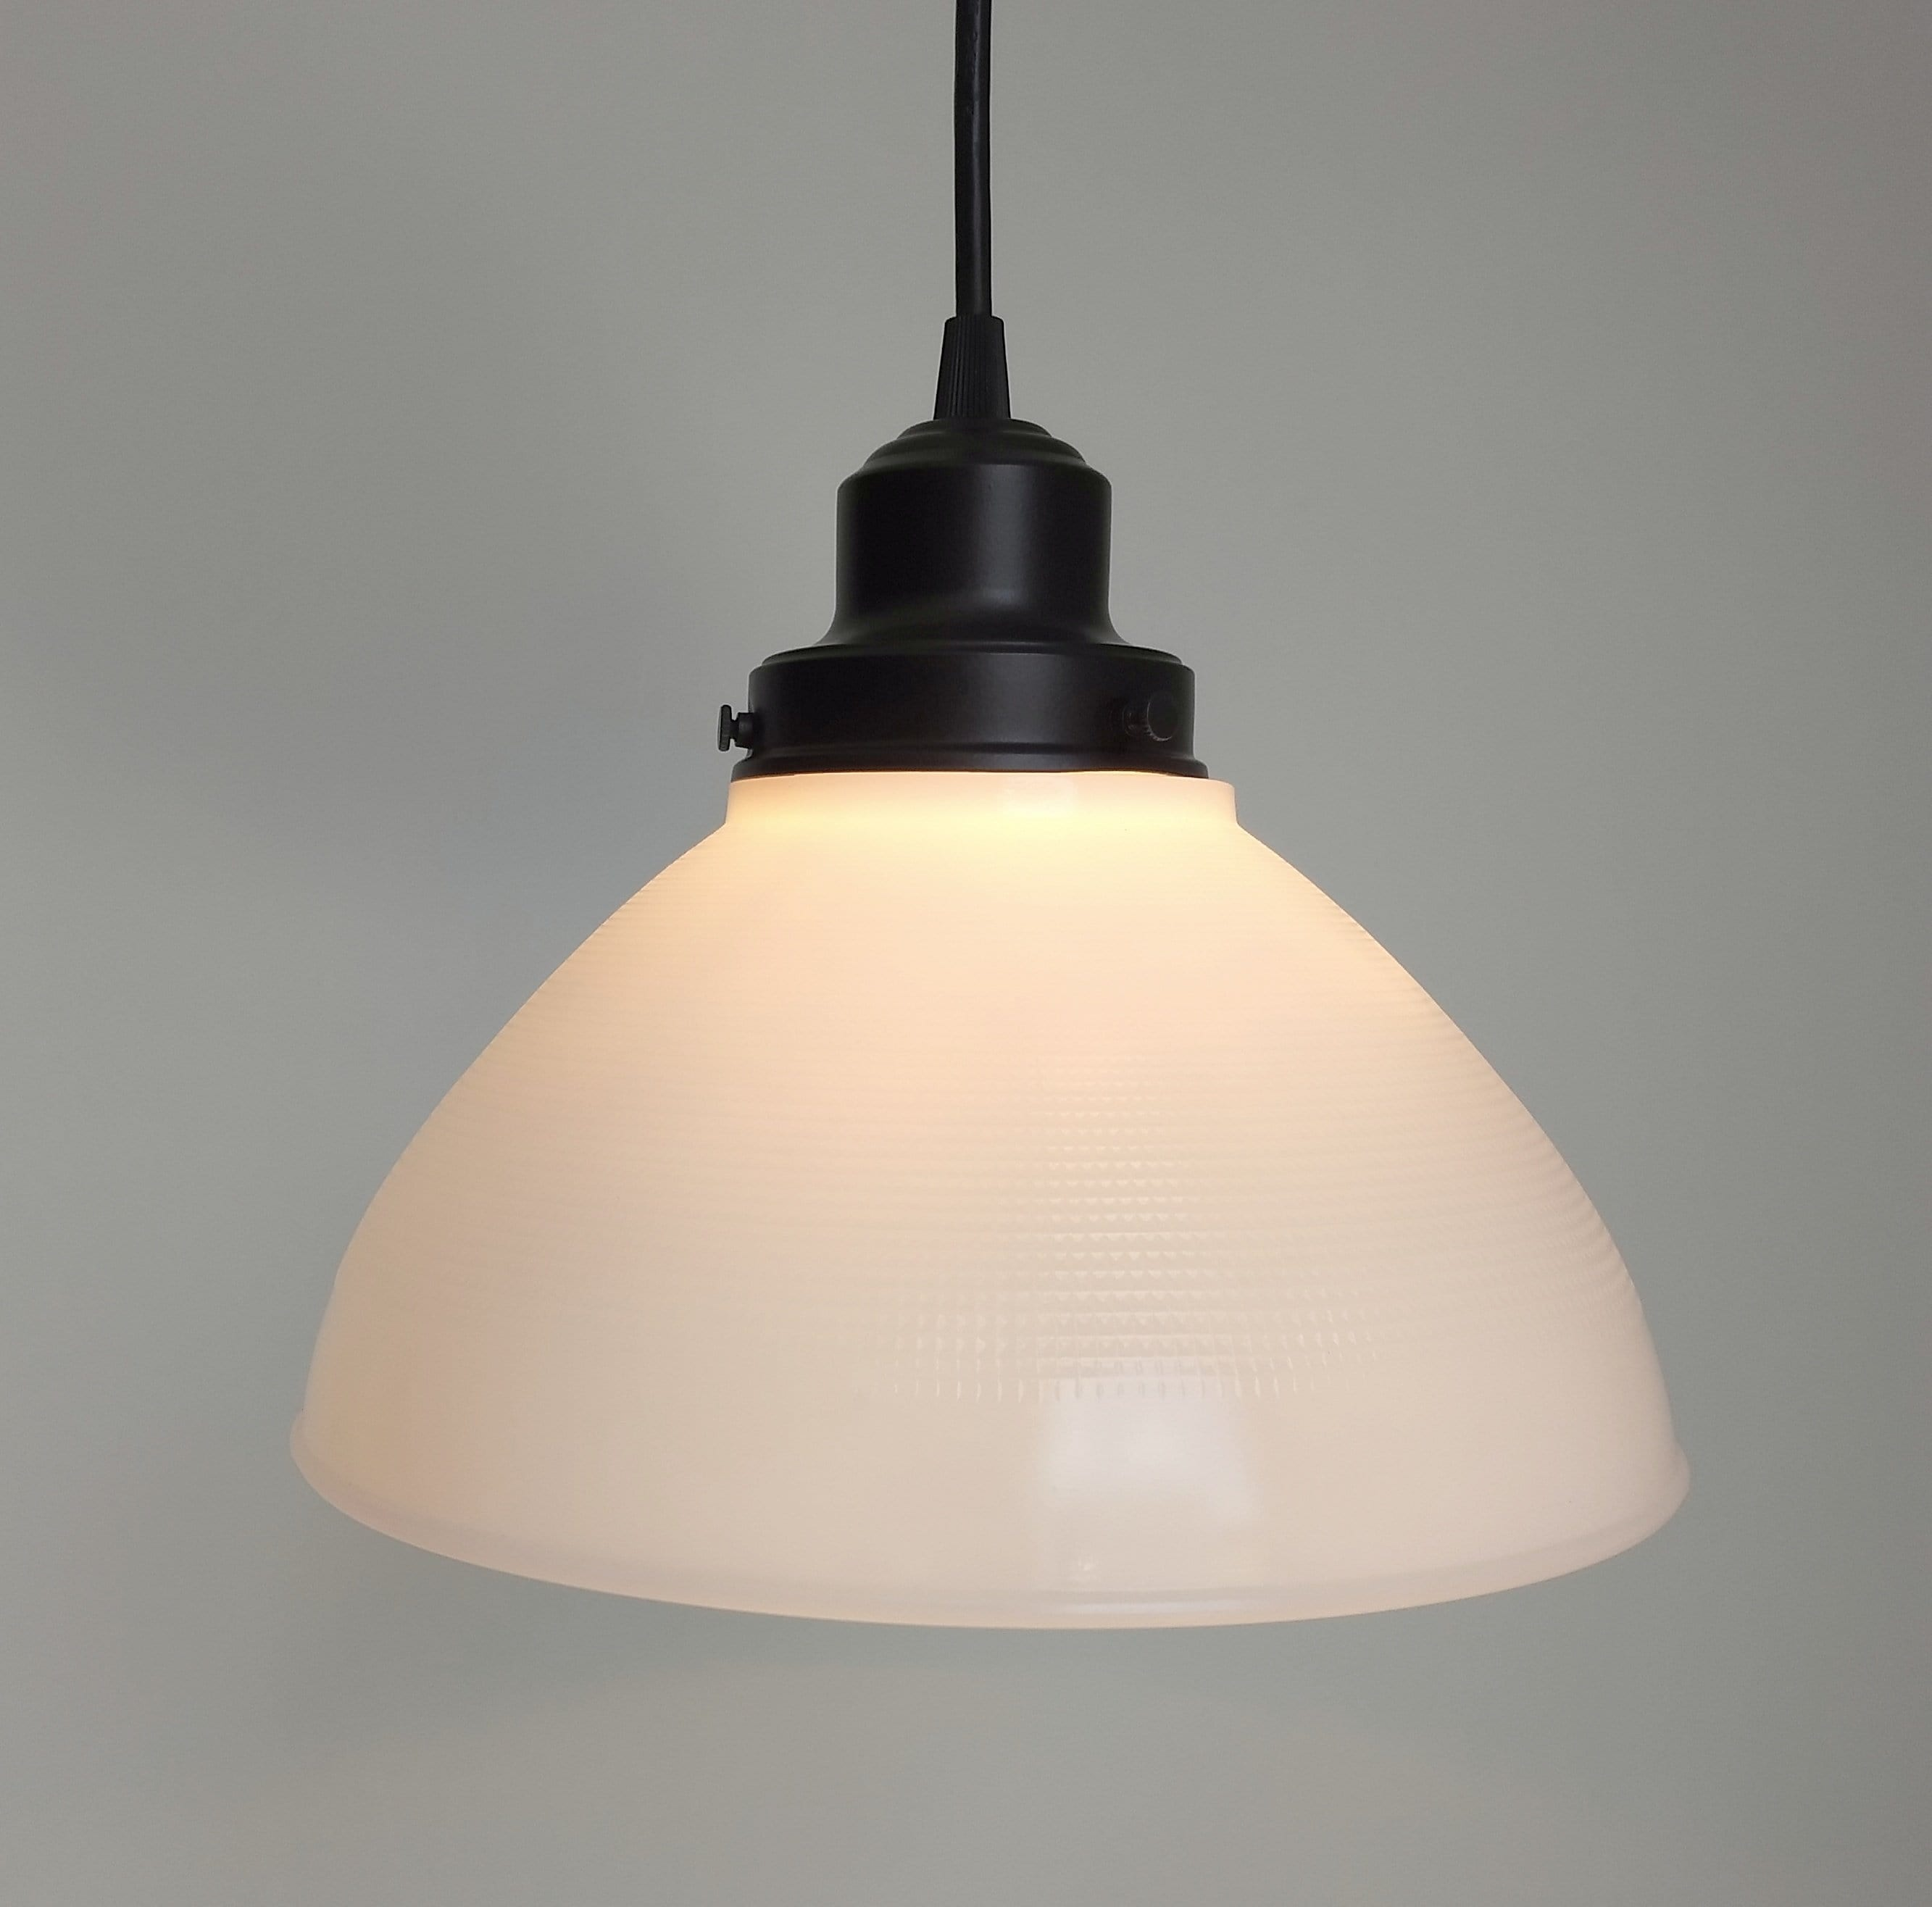 x shipping h in fixtures light glass azzardo gold balls crystal size chandeliers appealing new chrome lamp ceiling nautical magic md art design lighting the fixture box interior post black pendant rain modern bubble lantern milk reproduction types lights w amazing ball drop large chandelier of